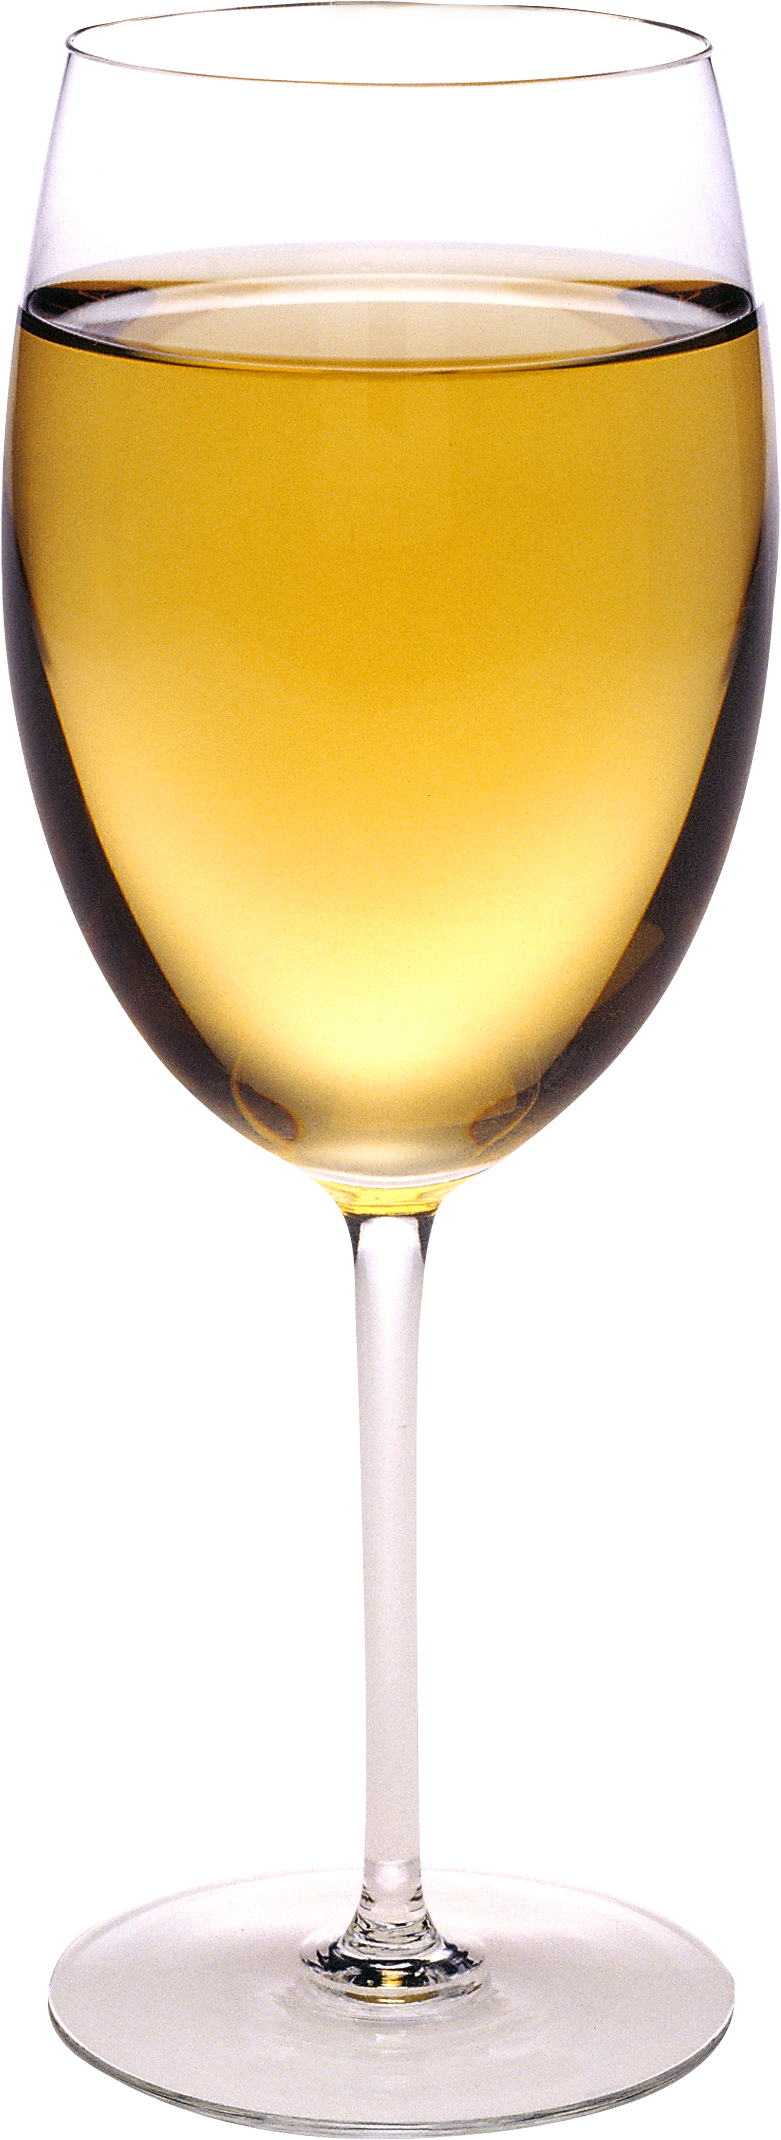 Glass png images free. Pineapple clipart wine